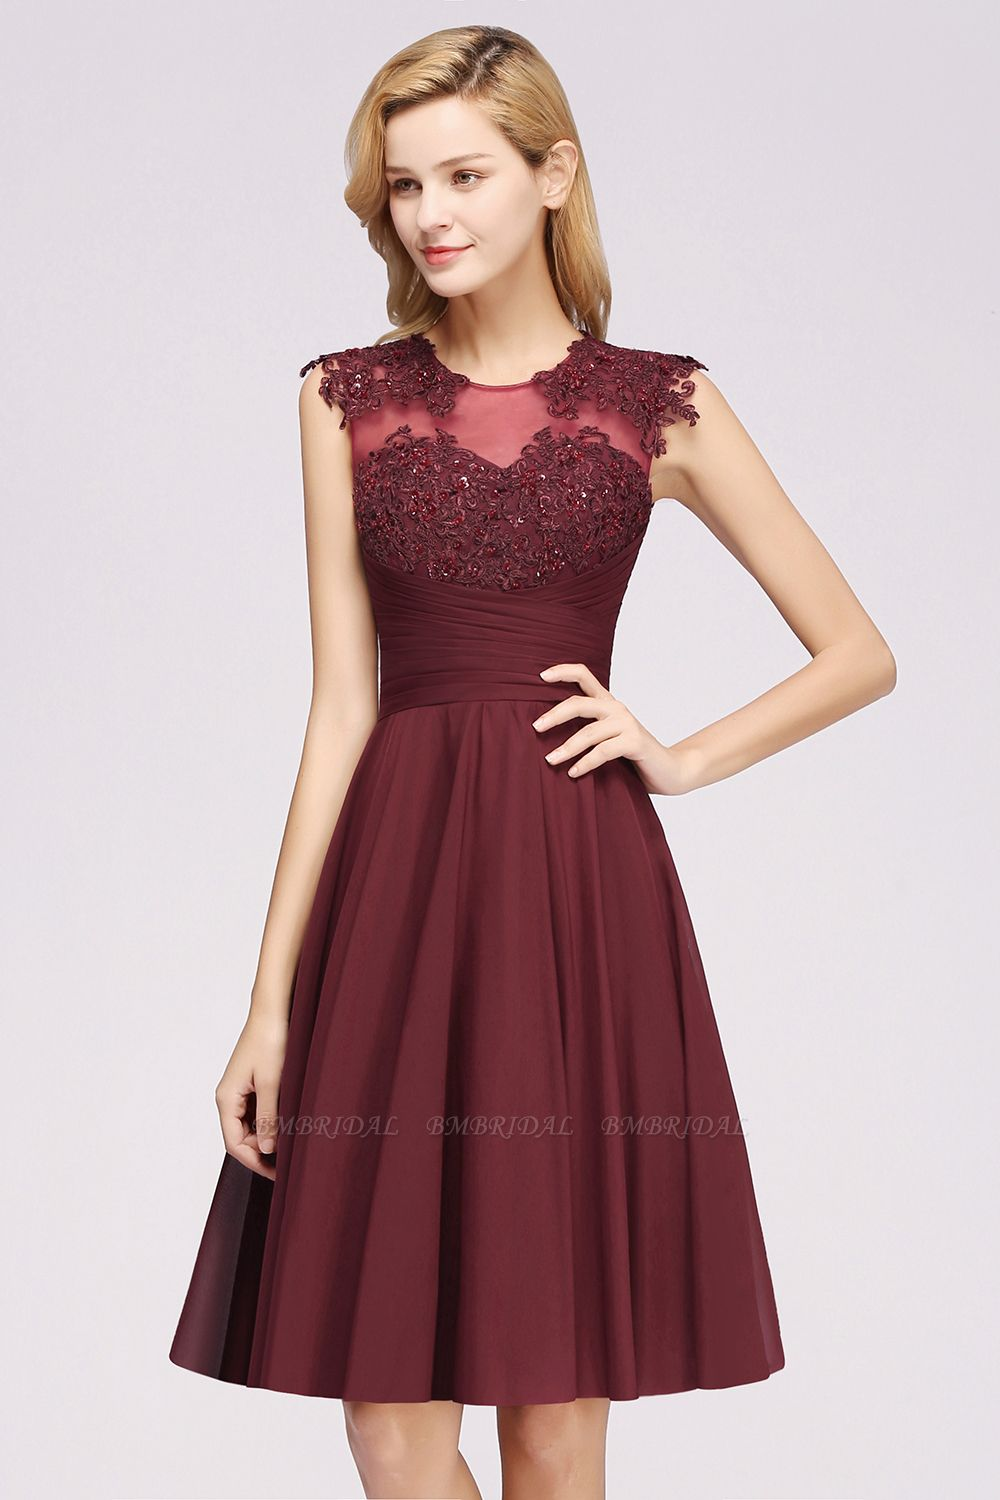 BMbridal Cute Chiffon Round Neck Short Burgundy Bridesmaid Dresses with Appliques